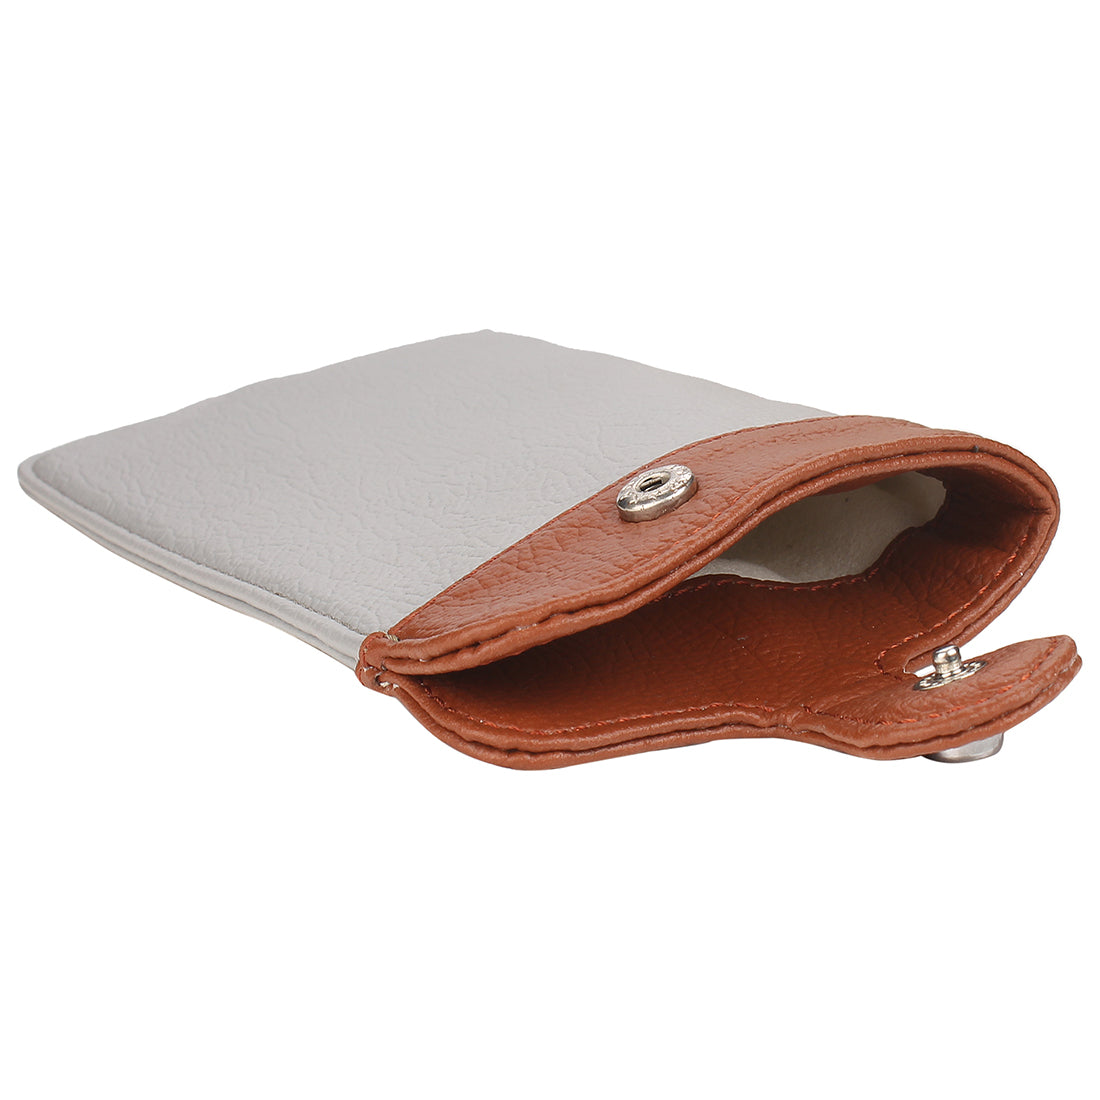 Brown & Grey Color Sunglass Cover